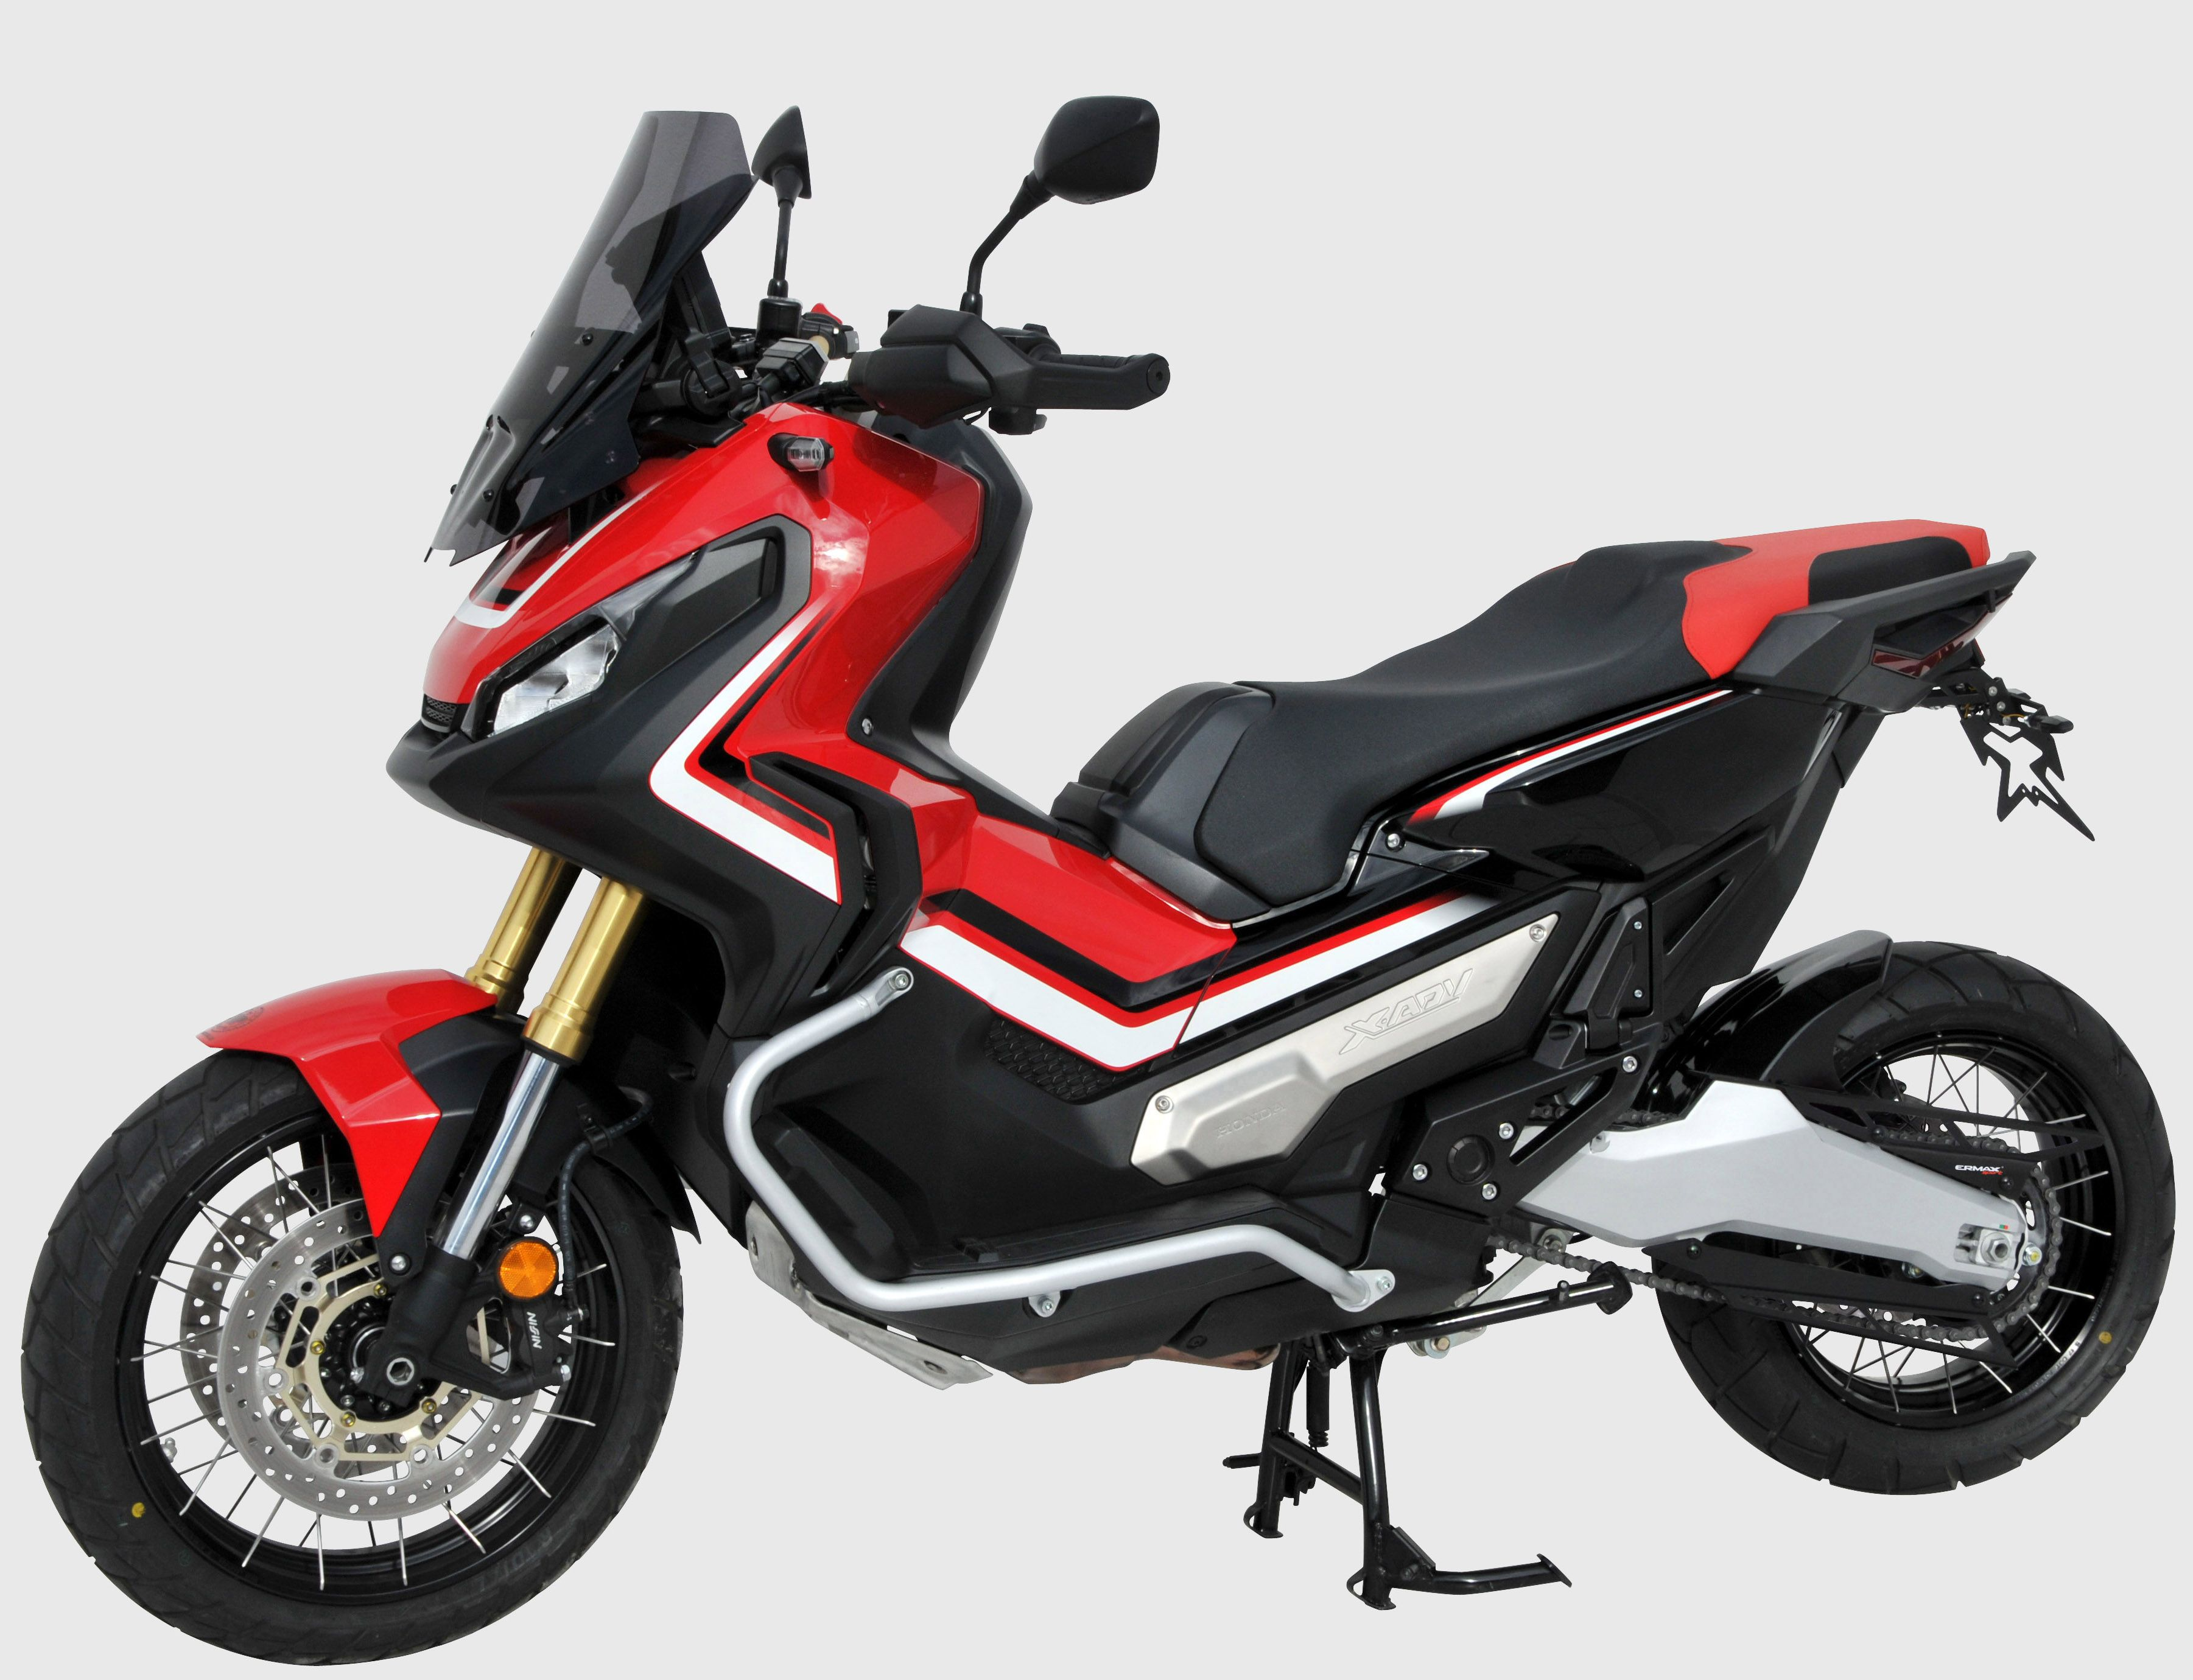 Honda X-ADV recalled for potential loss of power